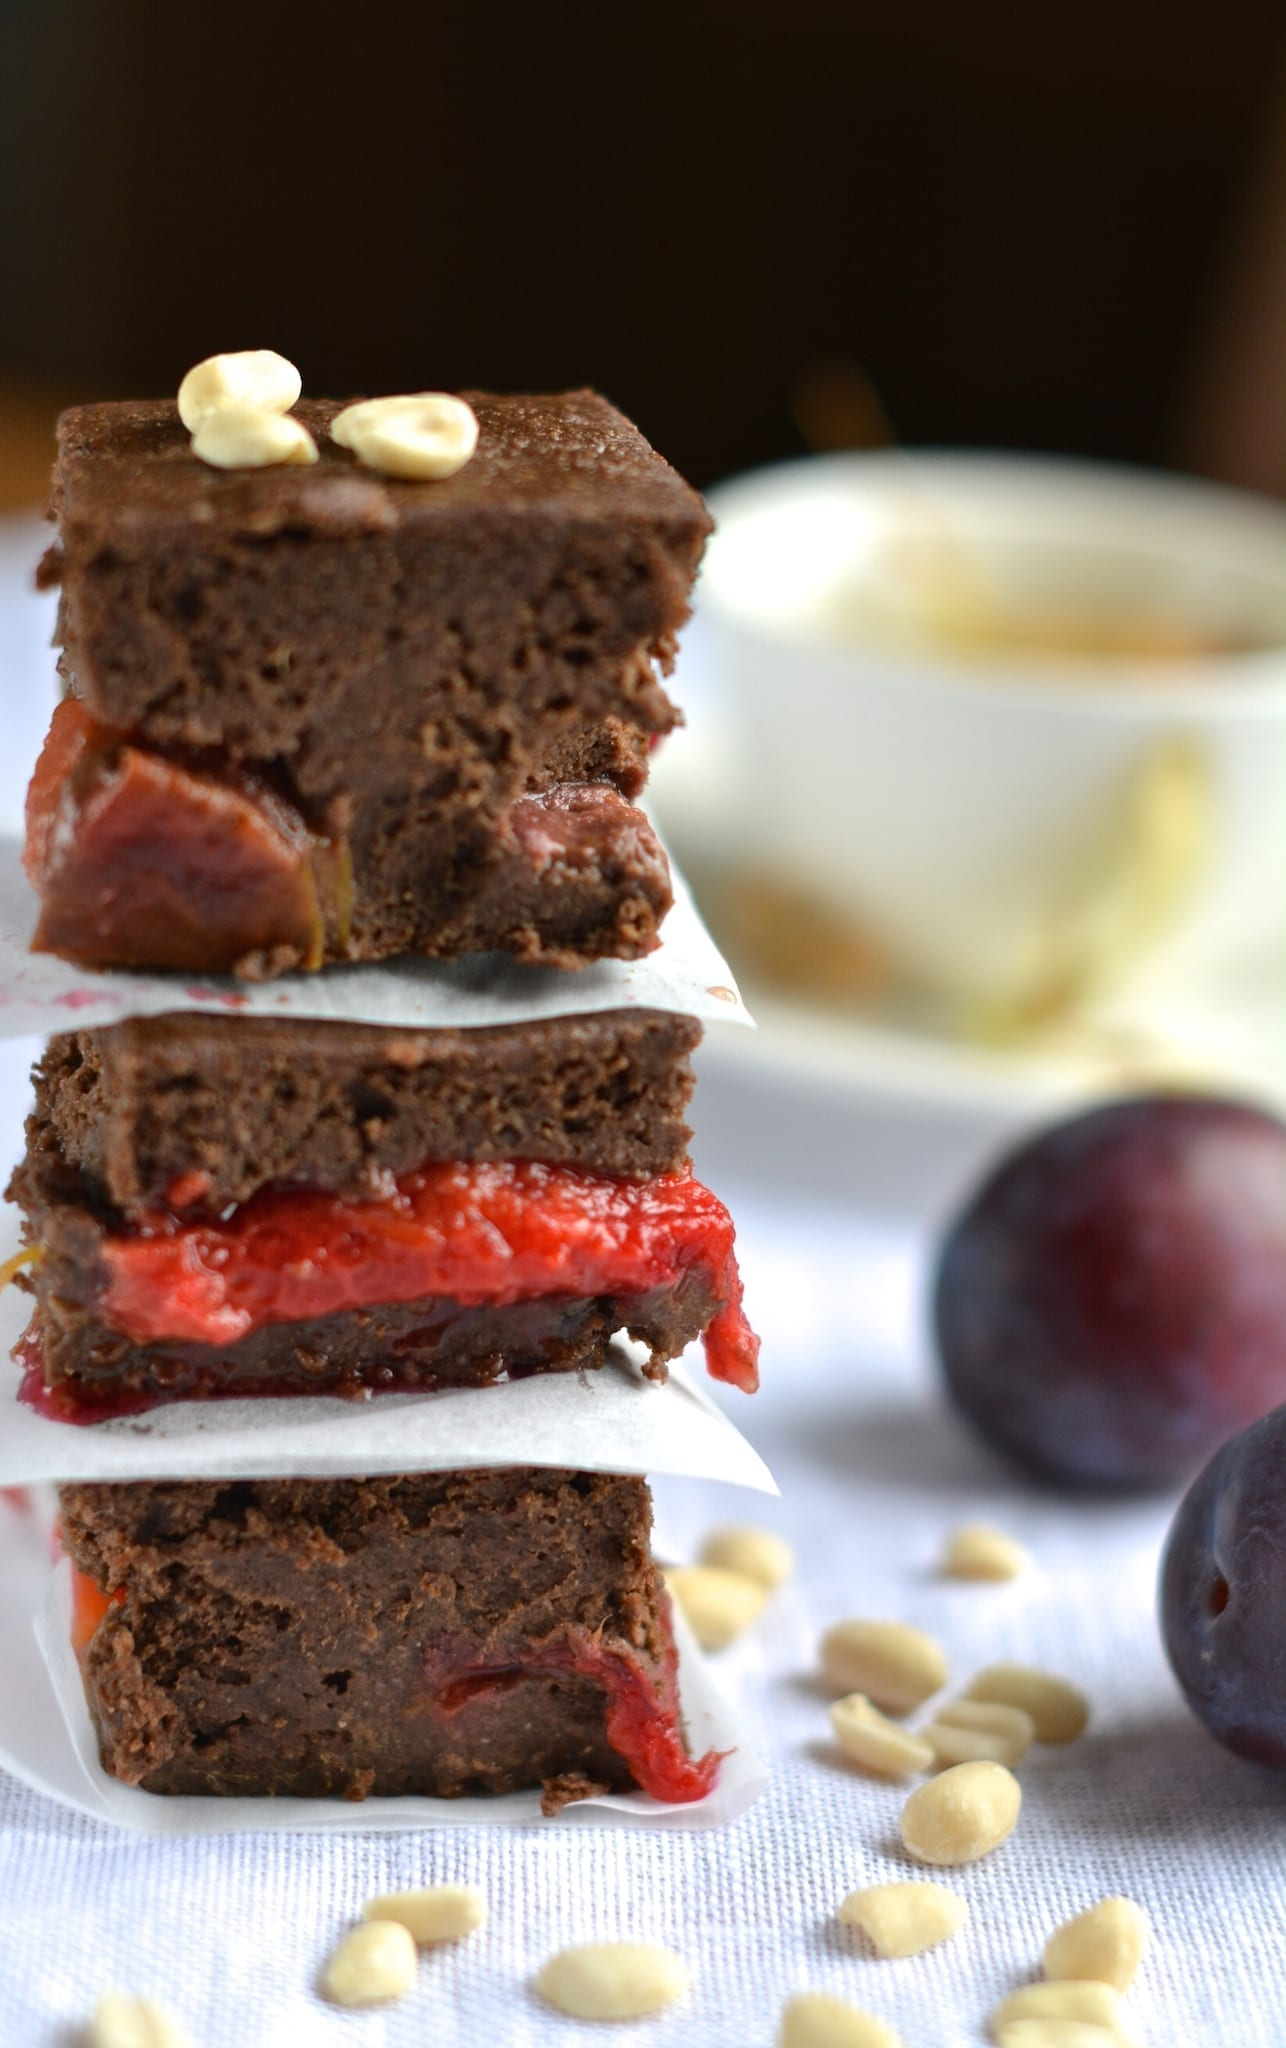 recipe, dessert, breakfast, brownie, carob, cacao, plums, coconut milk, oat flour, buckwheat flour, dates, banana, apple sauce, sugar-free, gluten-free, casein-free, vegan, plant-based, lactose-free